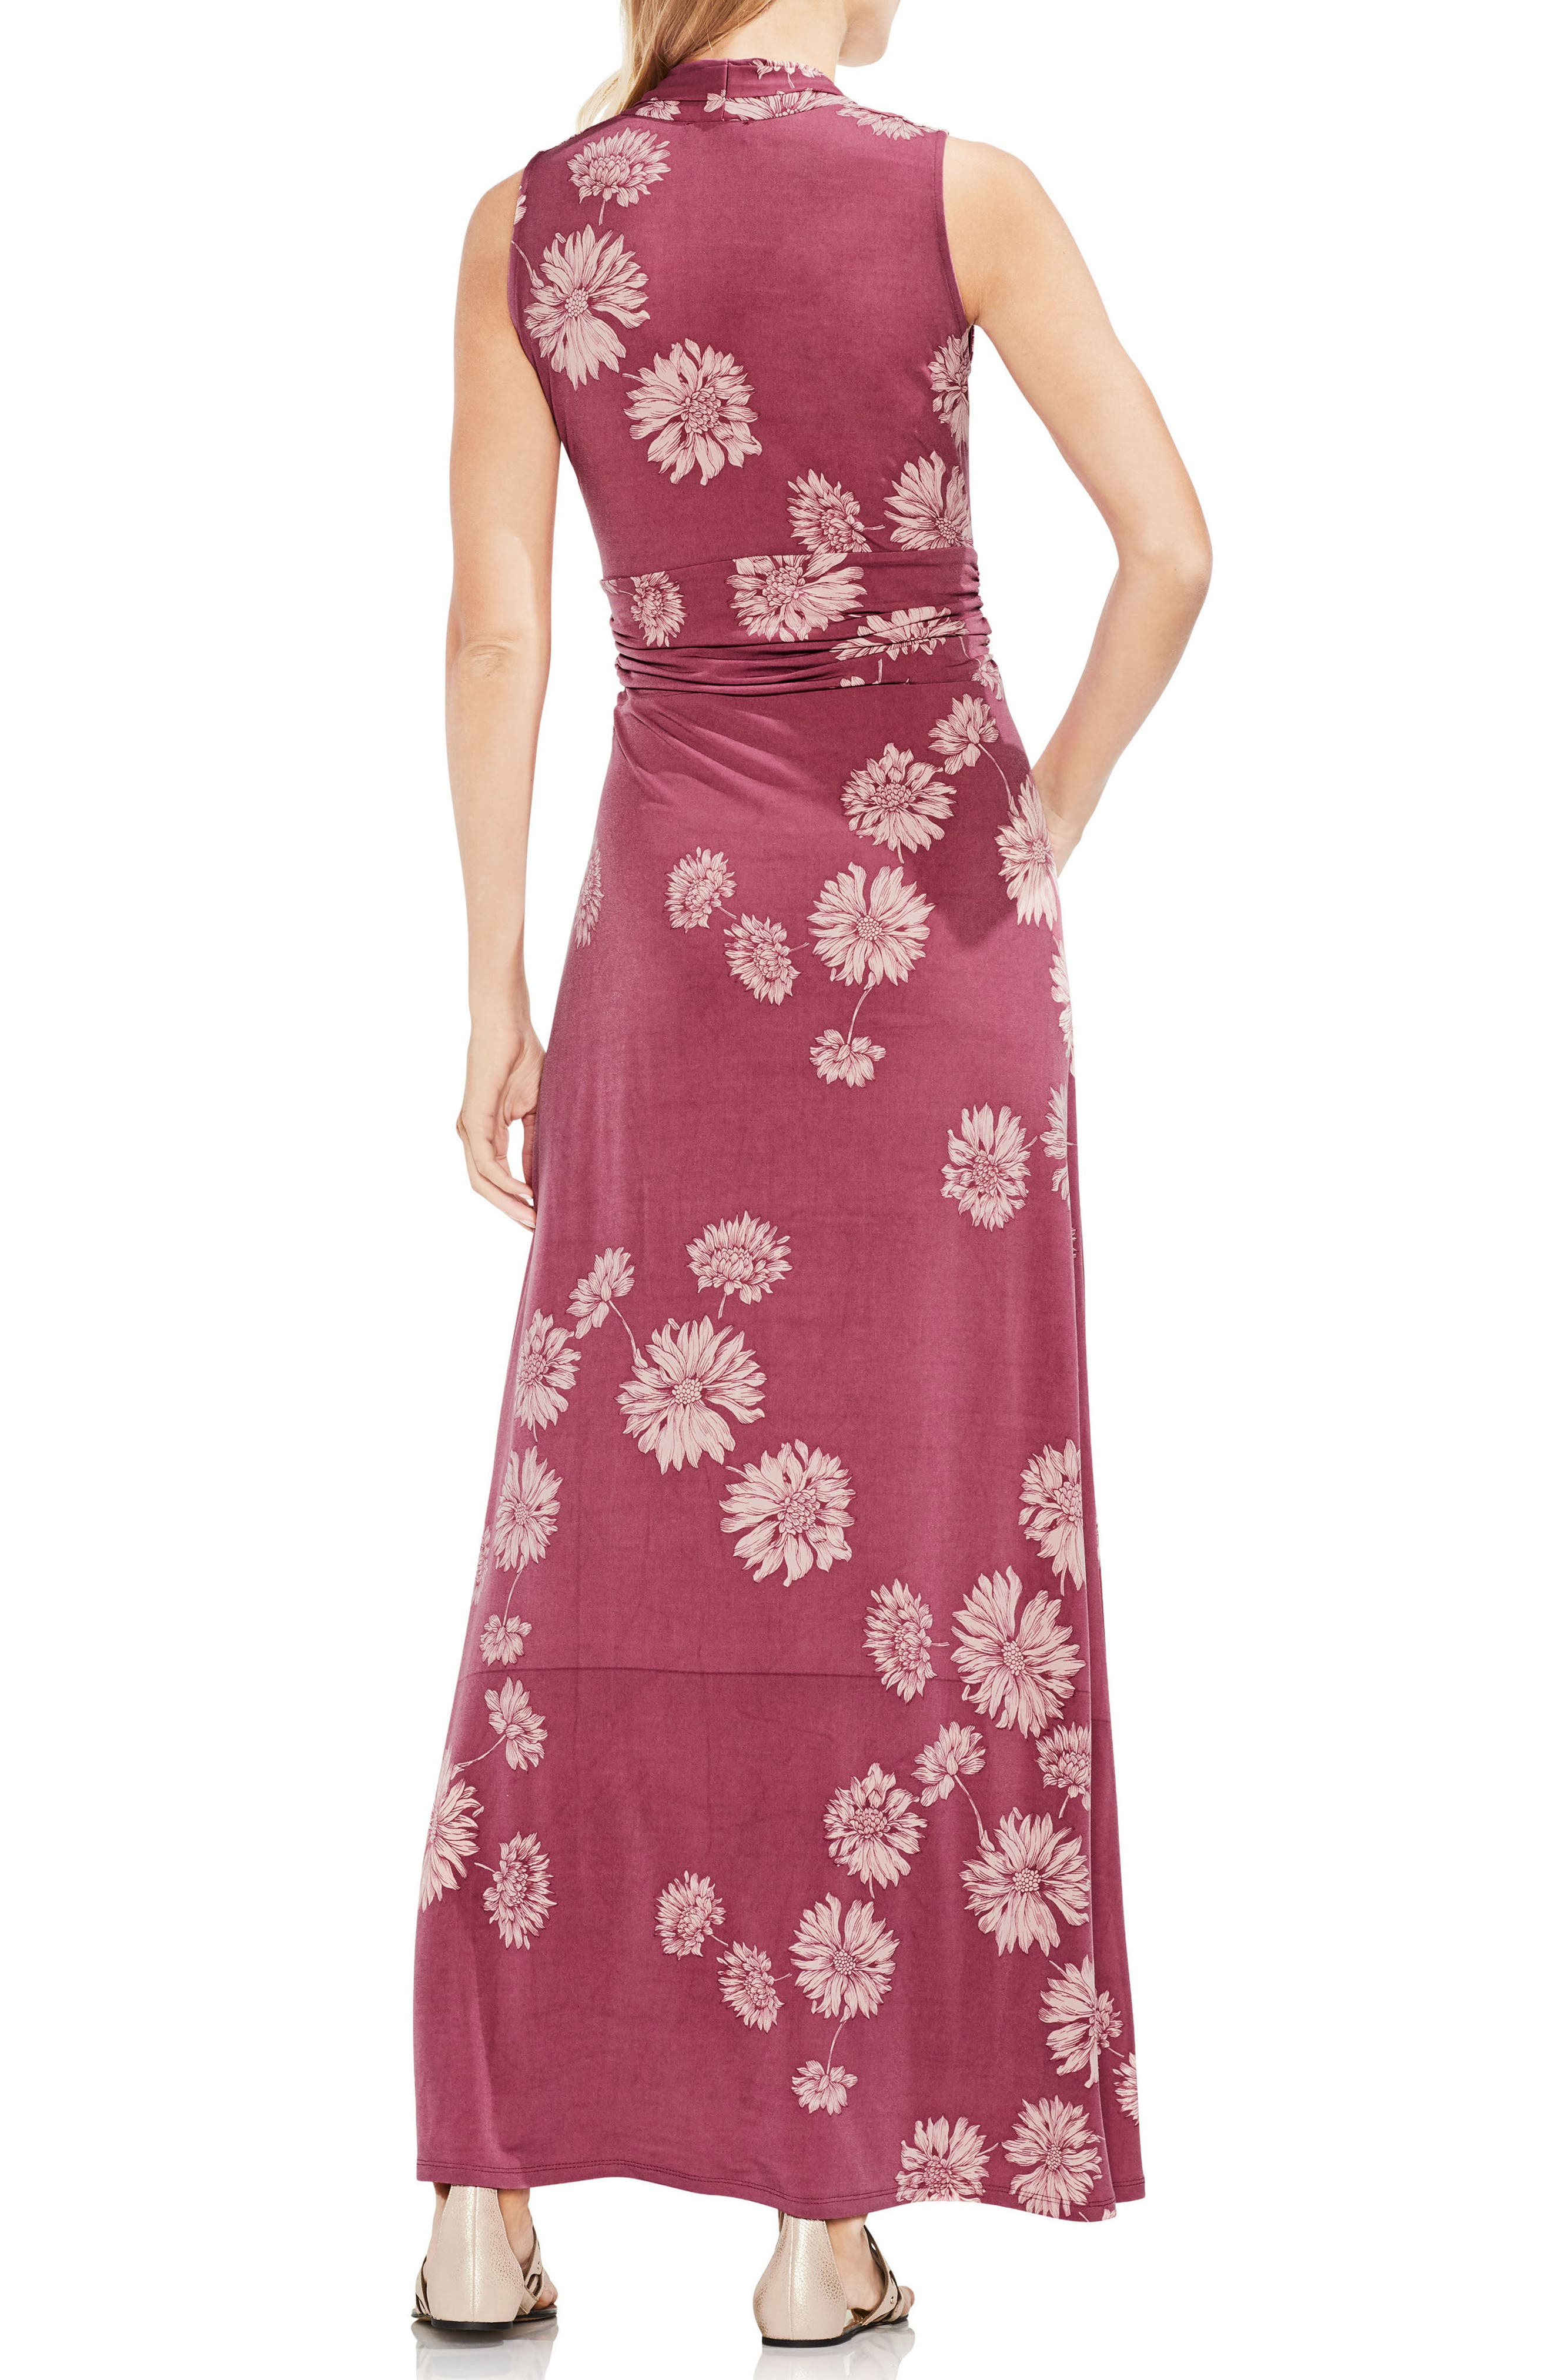 Chateau Floral Halter Maxi Dress,                             Alternate thumbnail 2, color,                             Summer Rose